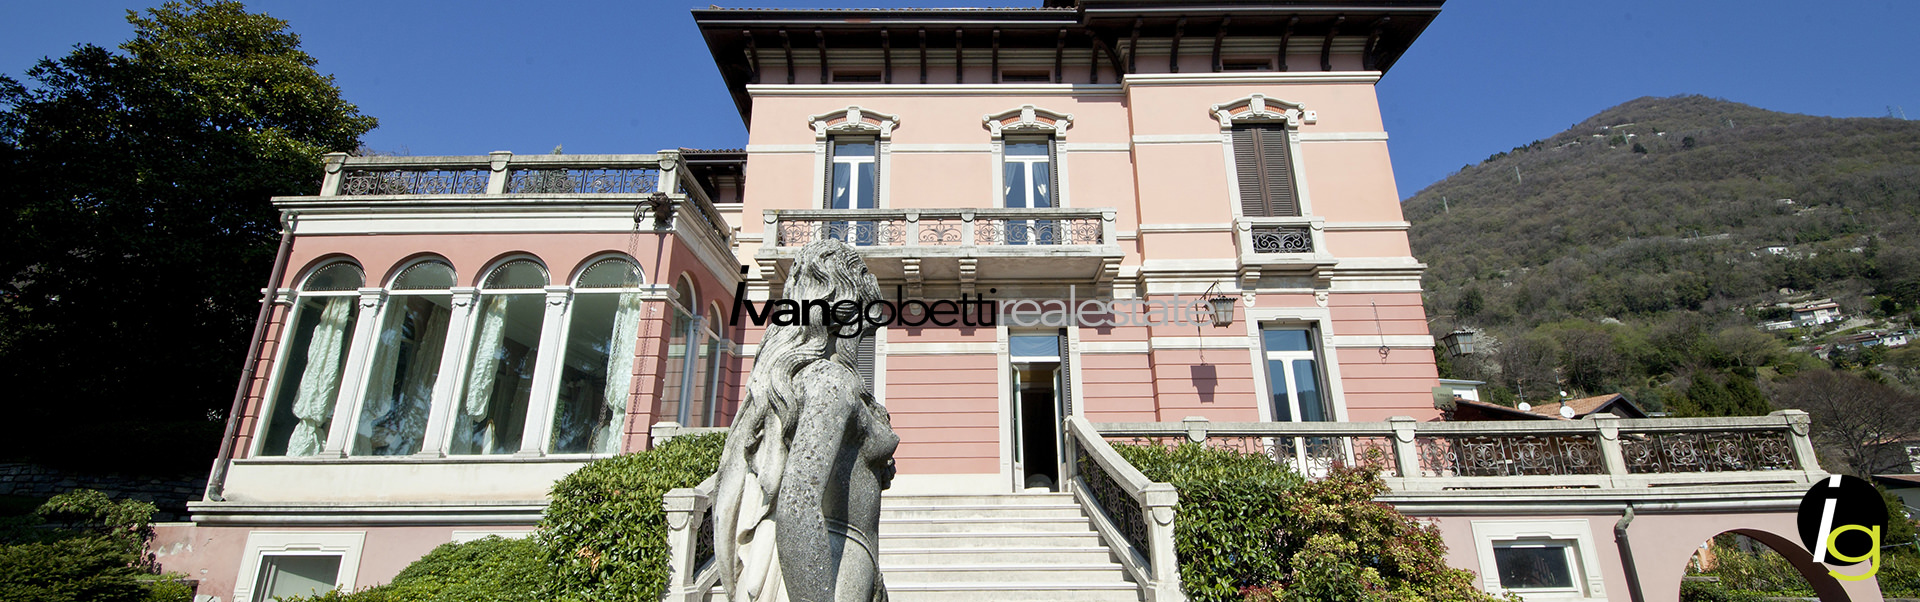 For sale prestigious villa with park and lake view in Cernobbio<br/><span>Product Code: 15185